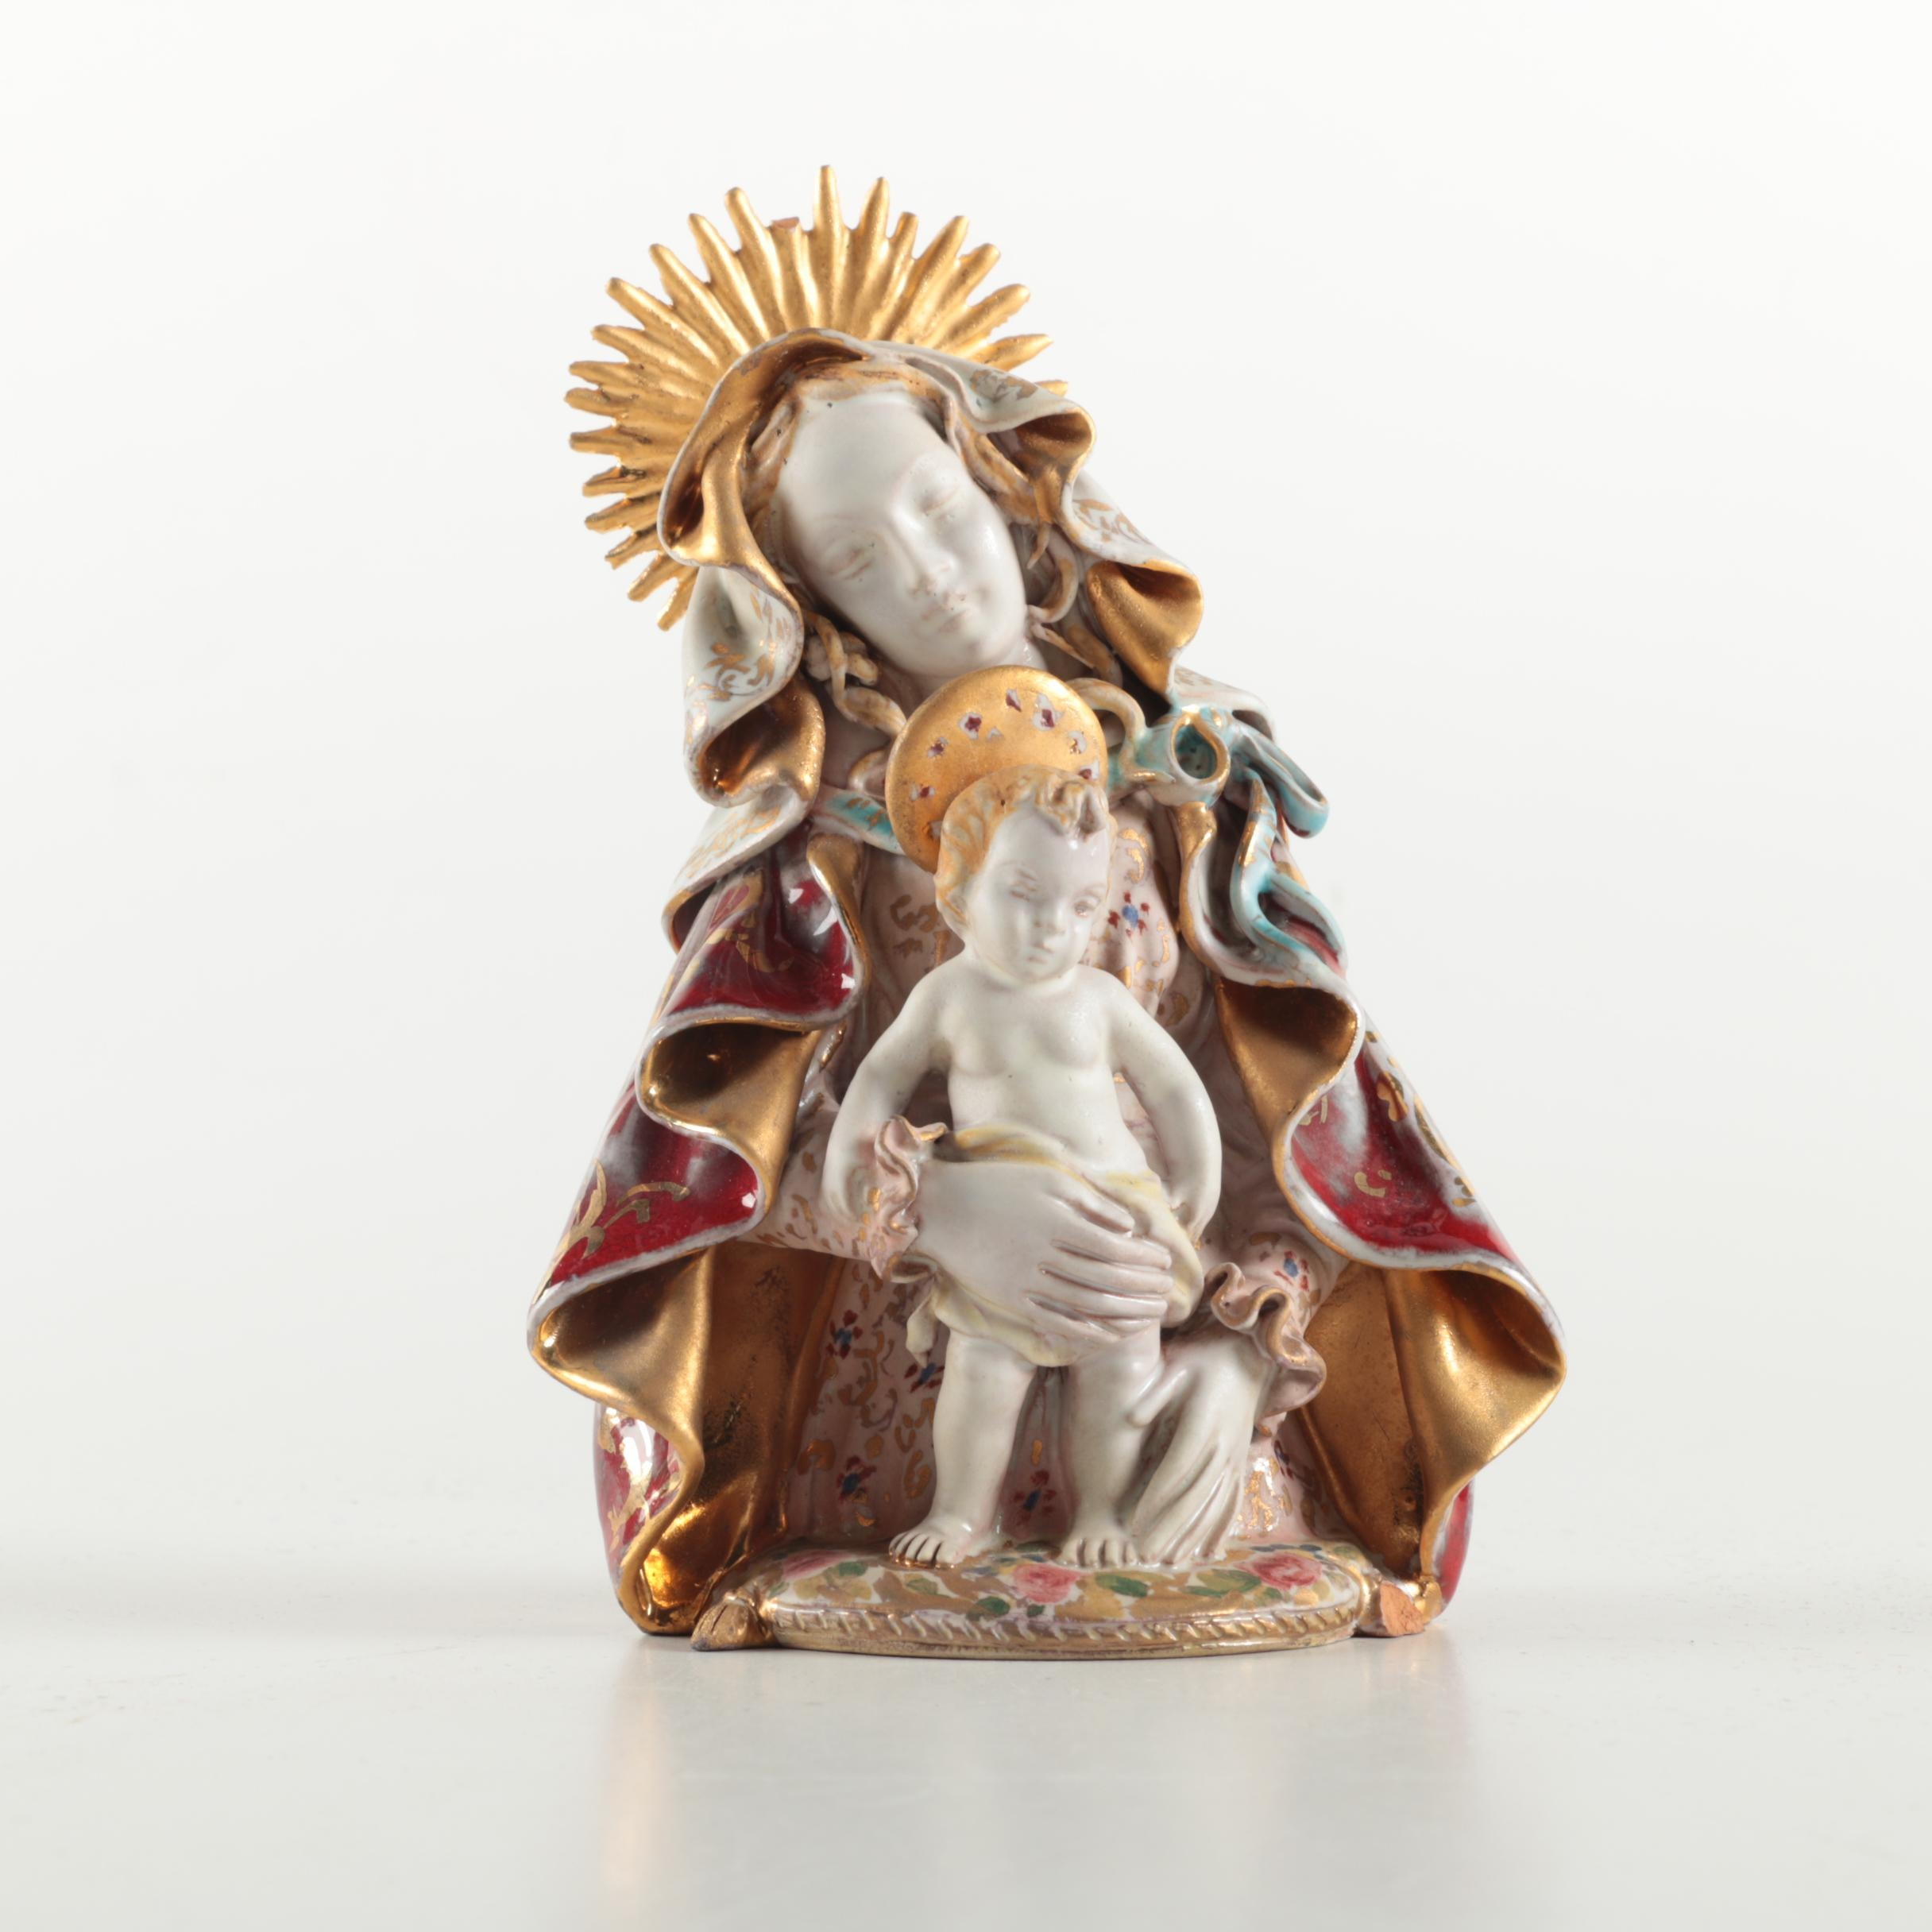 Eugenio Pattarino Italian Porcelain Madonna and Child Bust